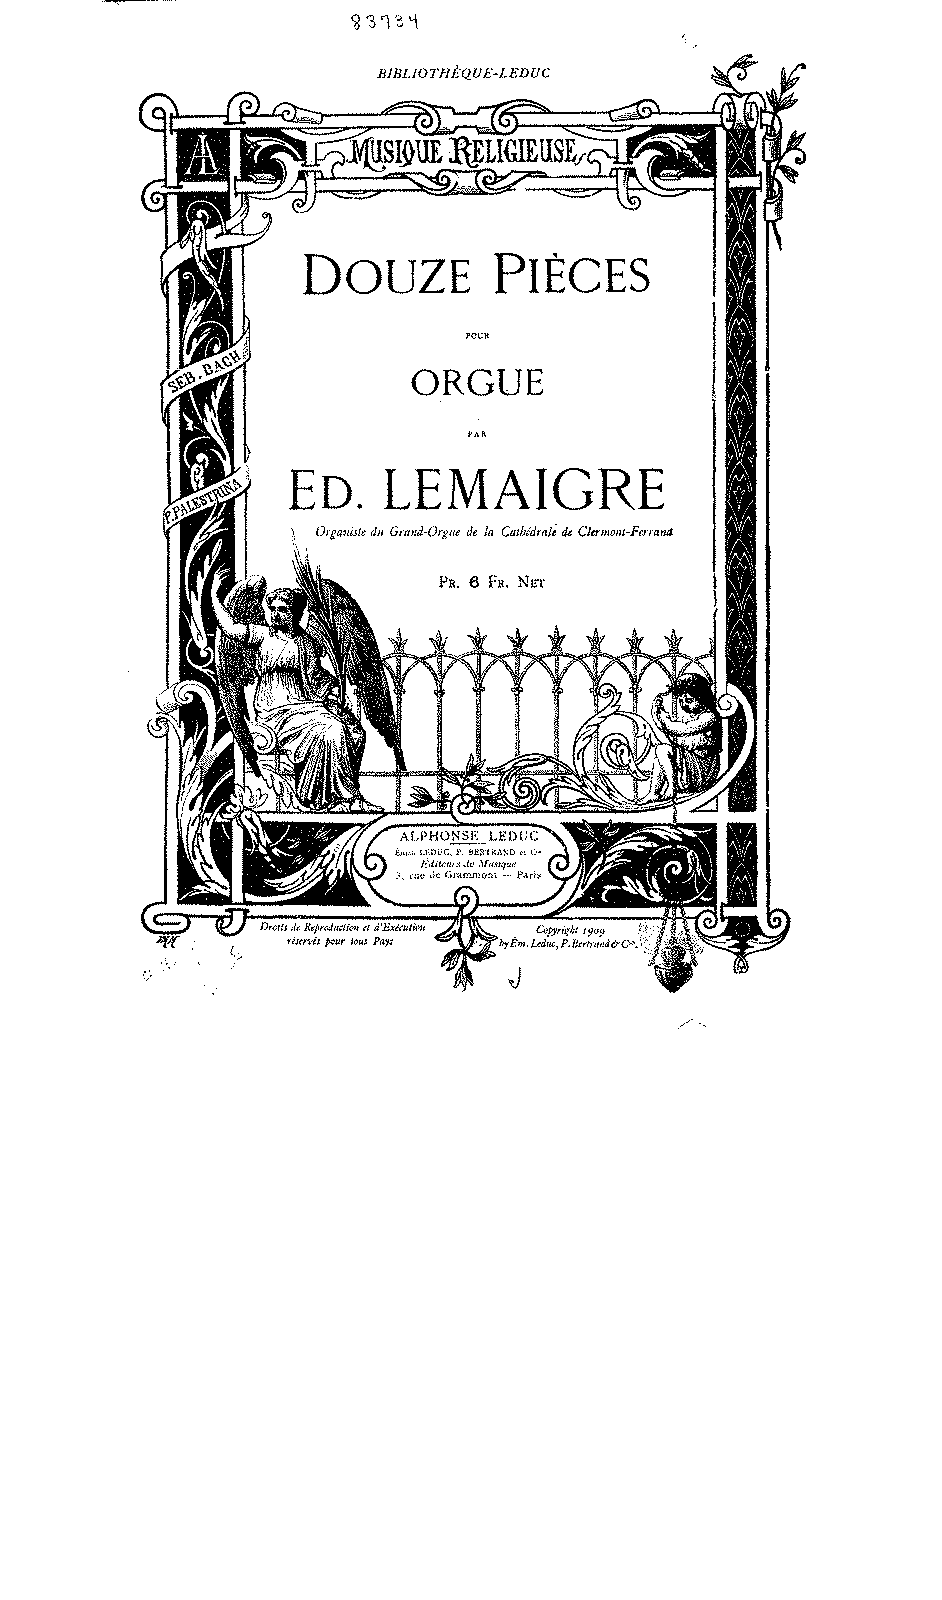 Lemaigre - 12 Pieces for Organ.pdf